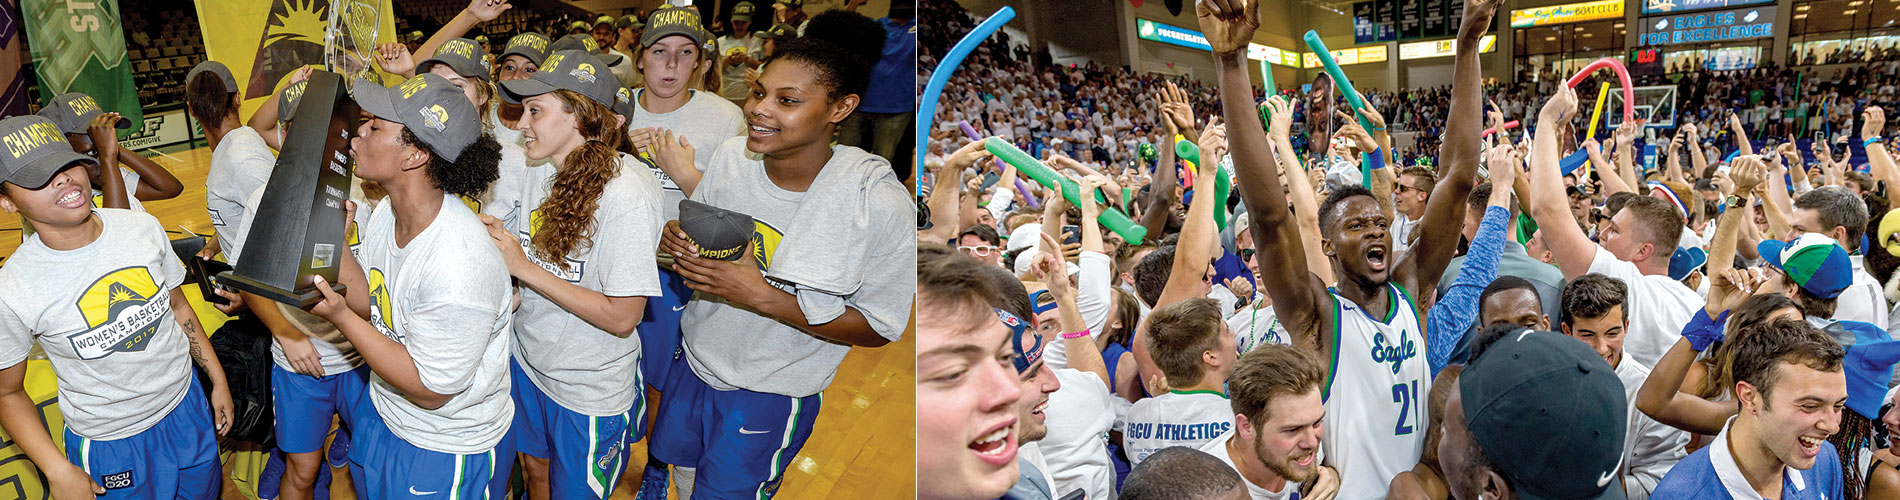 FGCU men's and women's basketball at the big dance.